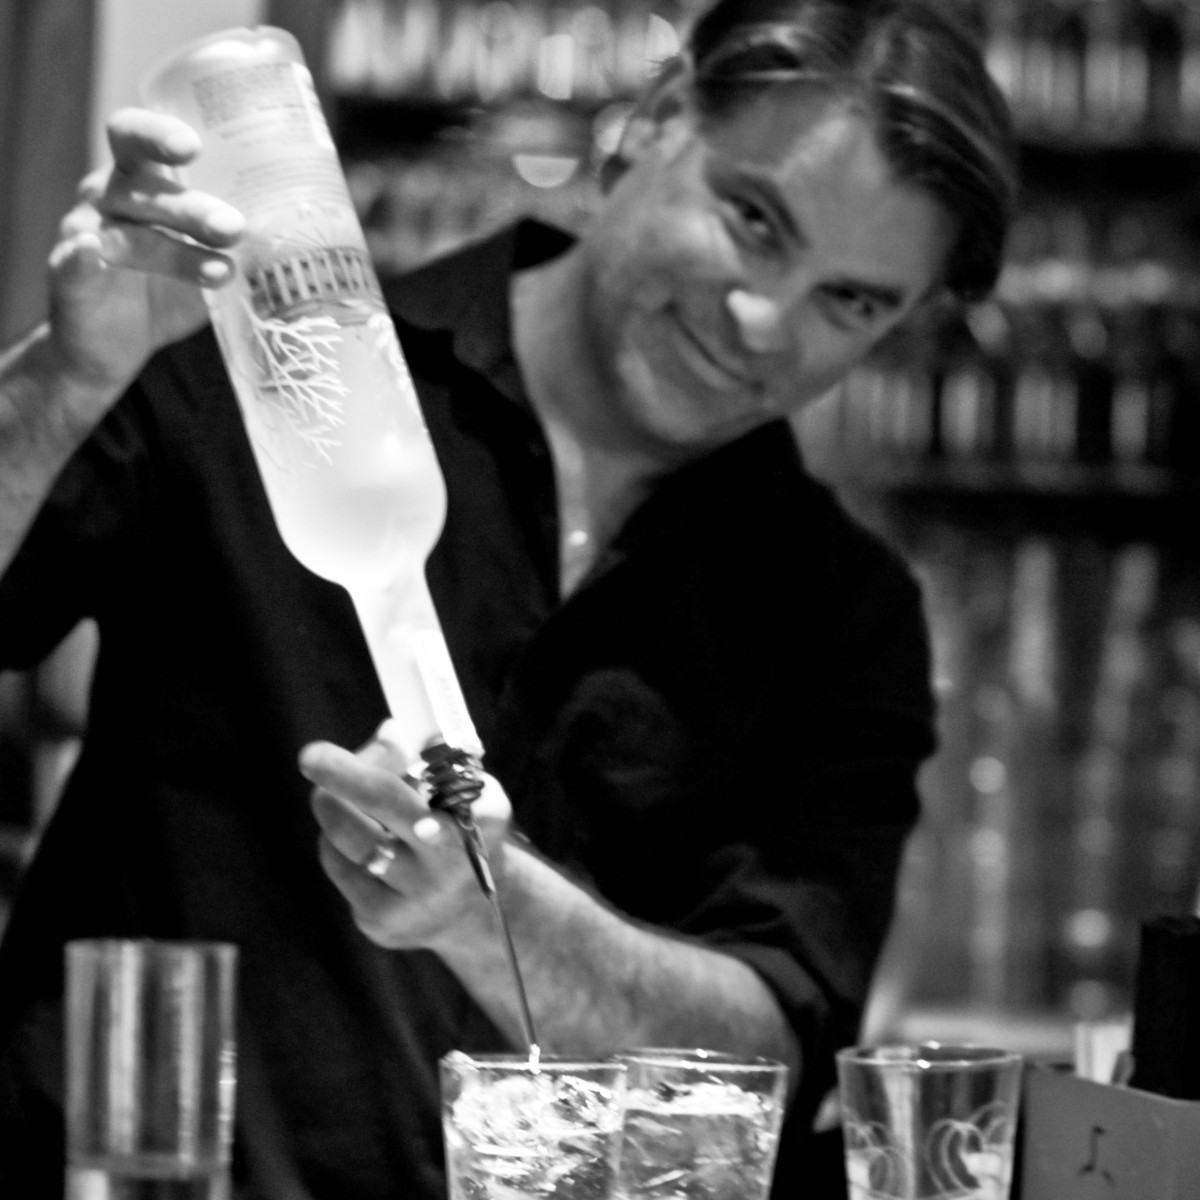 Bartender of Parigi restaurant in Dallas